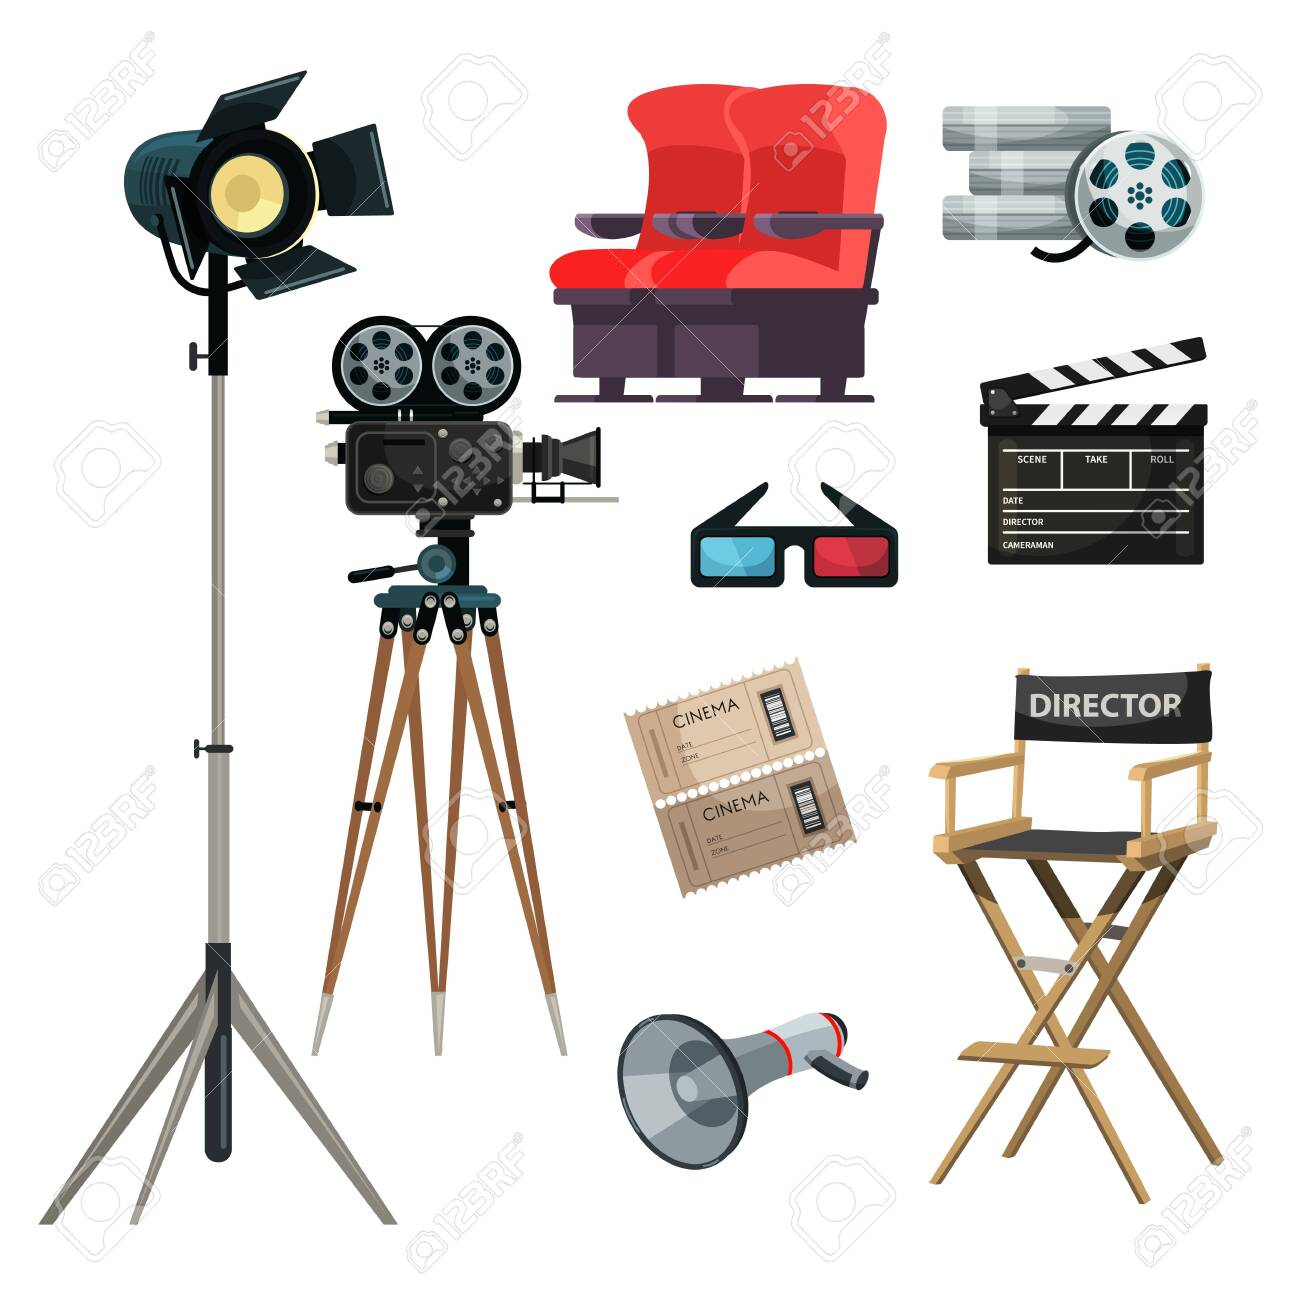 Cinematography items vector illustrations set. Movie directing, filmmaking. Cinema ticket, 3D glasses. Film strip, tape, director chair cliparts. Classic movie clapper, loudspeaker, camera - 152568723